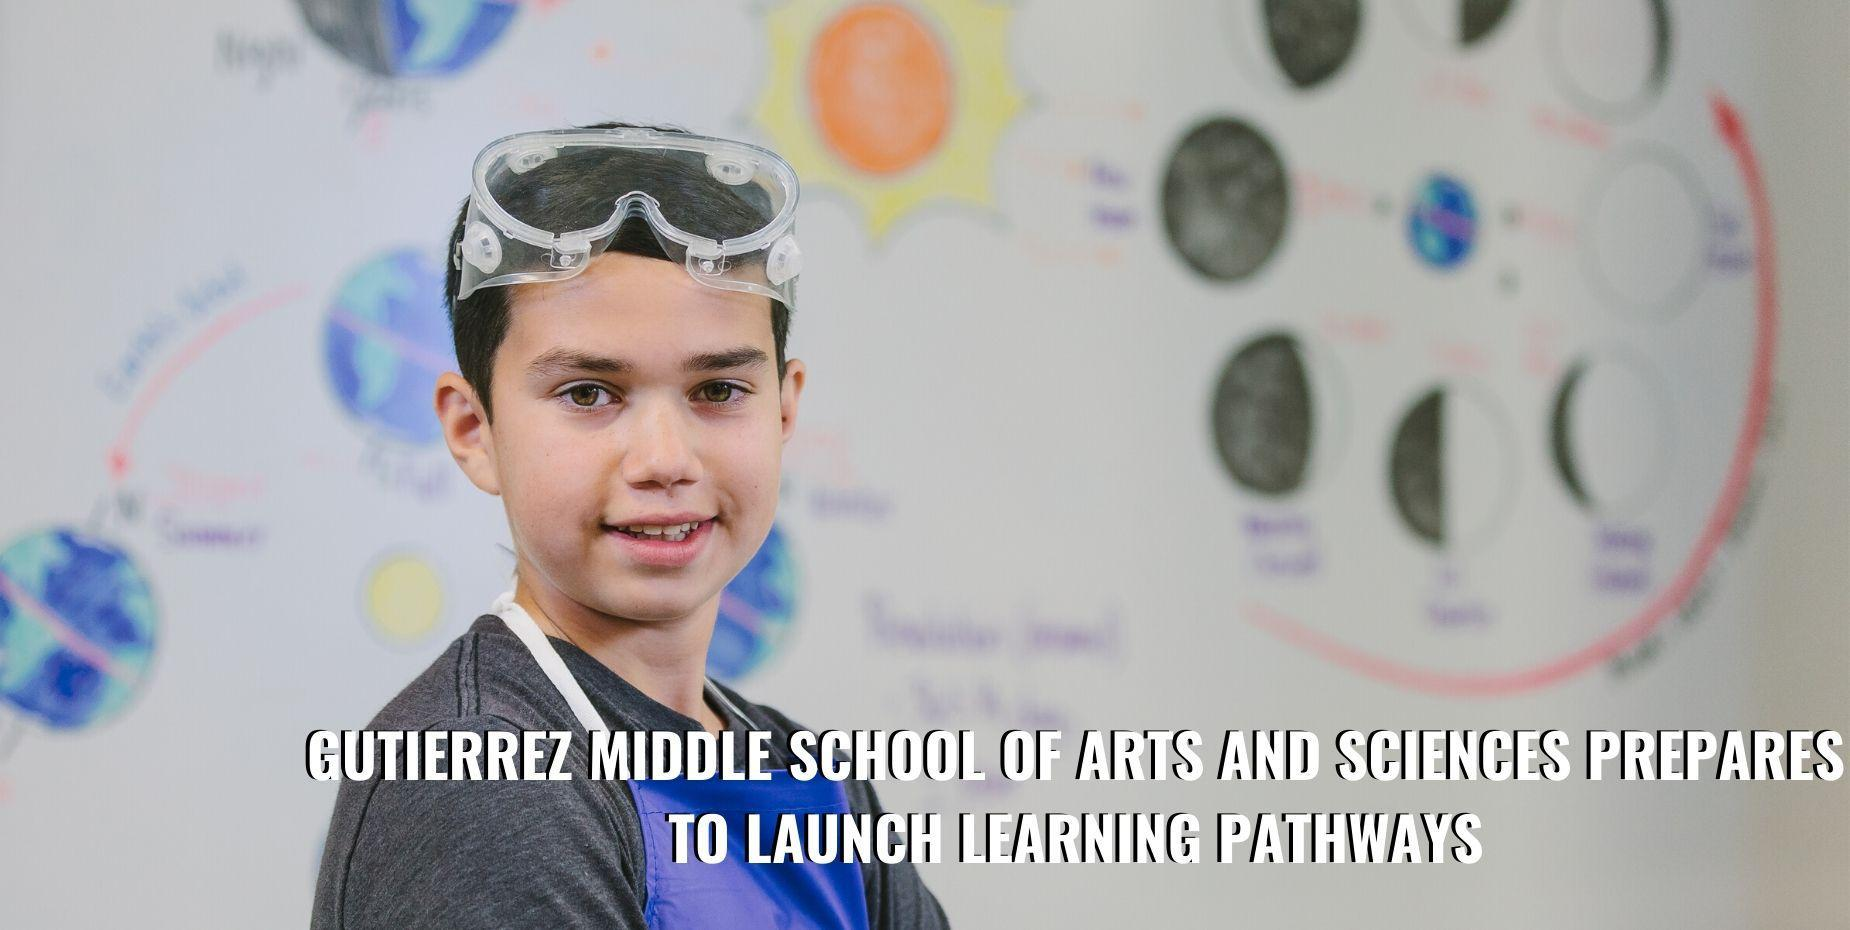 Gutierrez Middle School of Arts and Sciences prepares to launch learning pathways